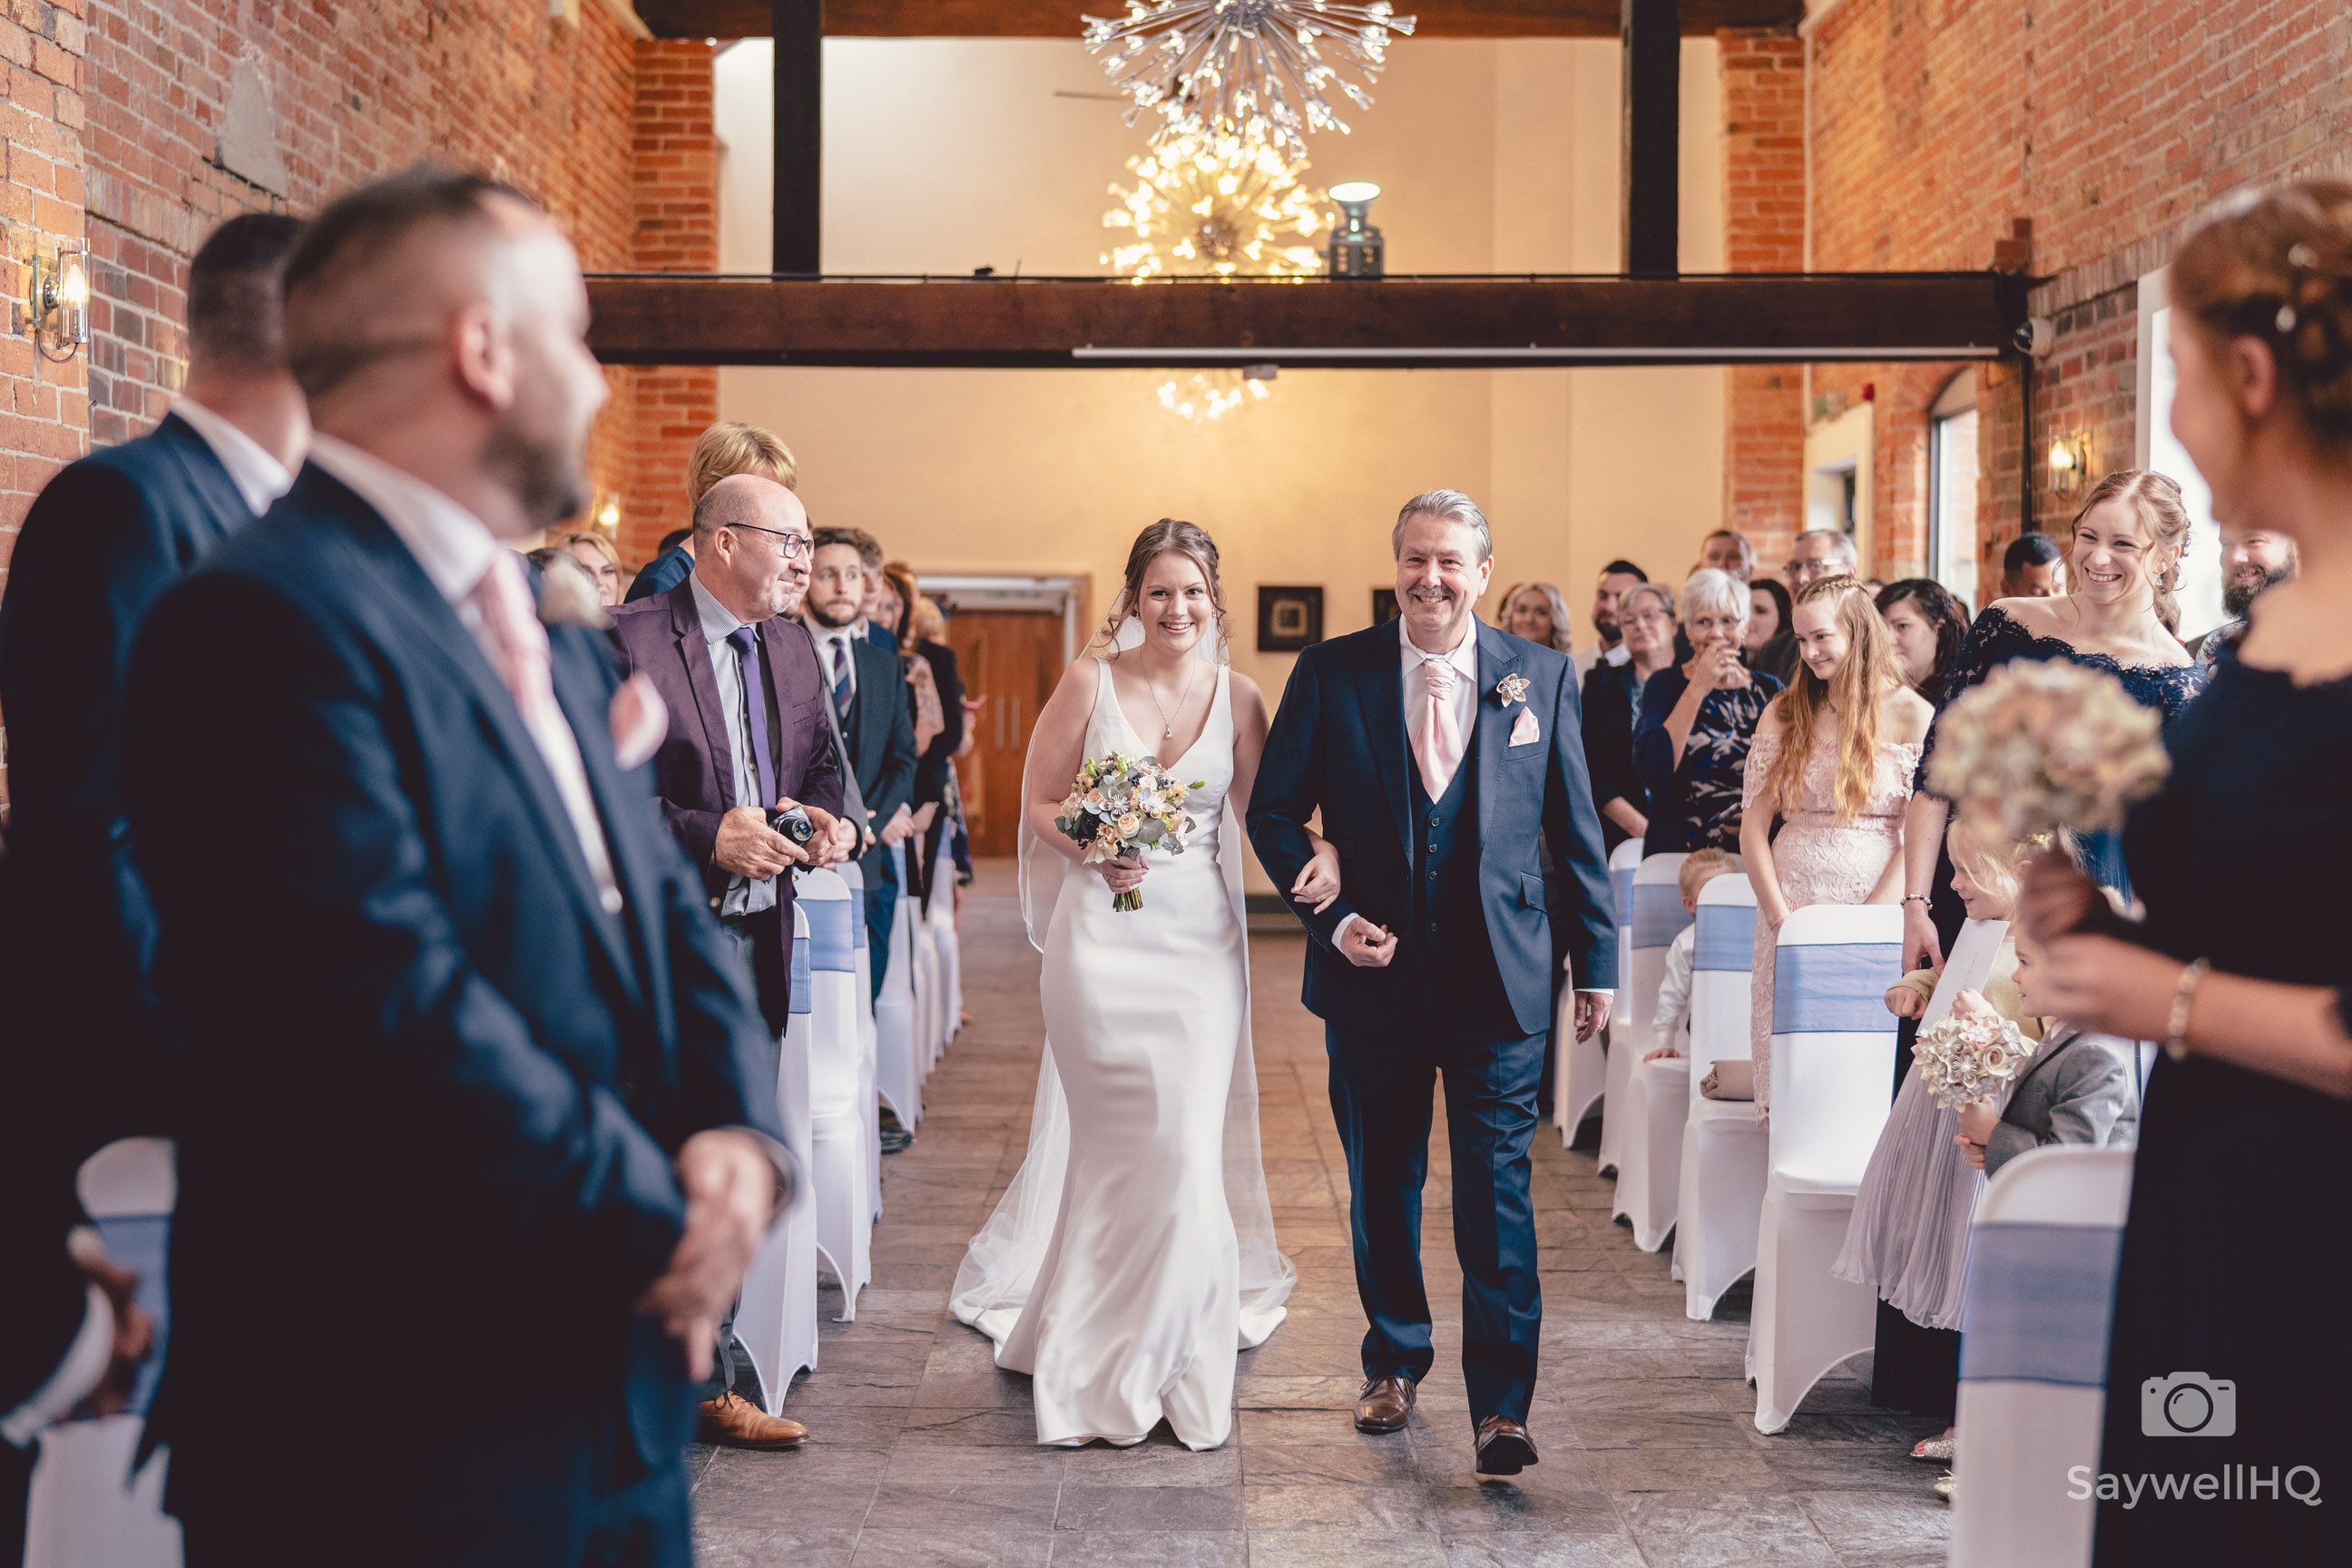 Goosedale wedding photography - bride and father walking down the aisle